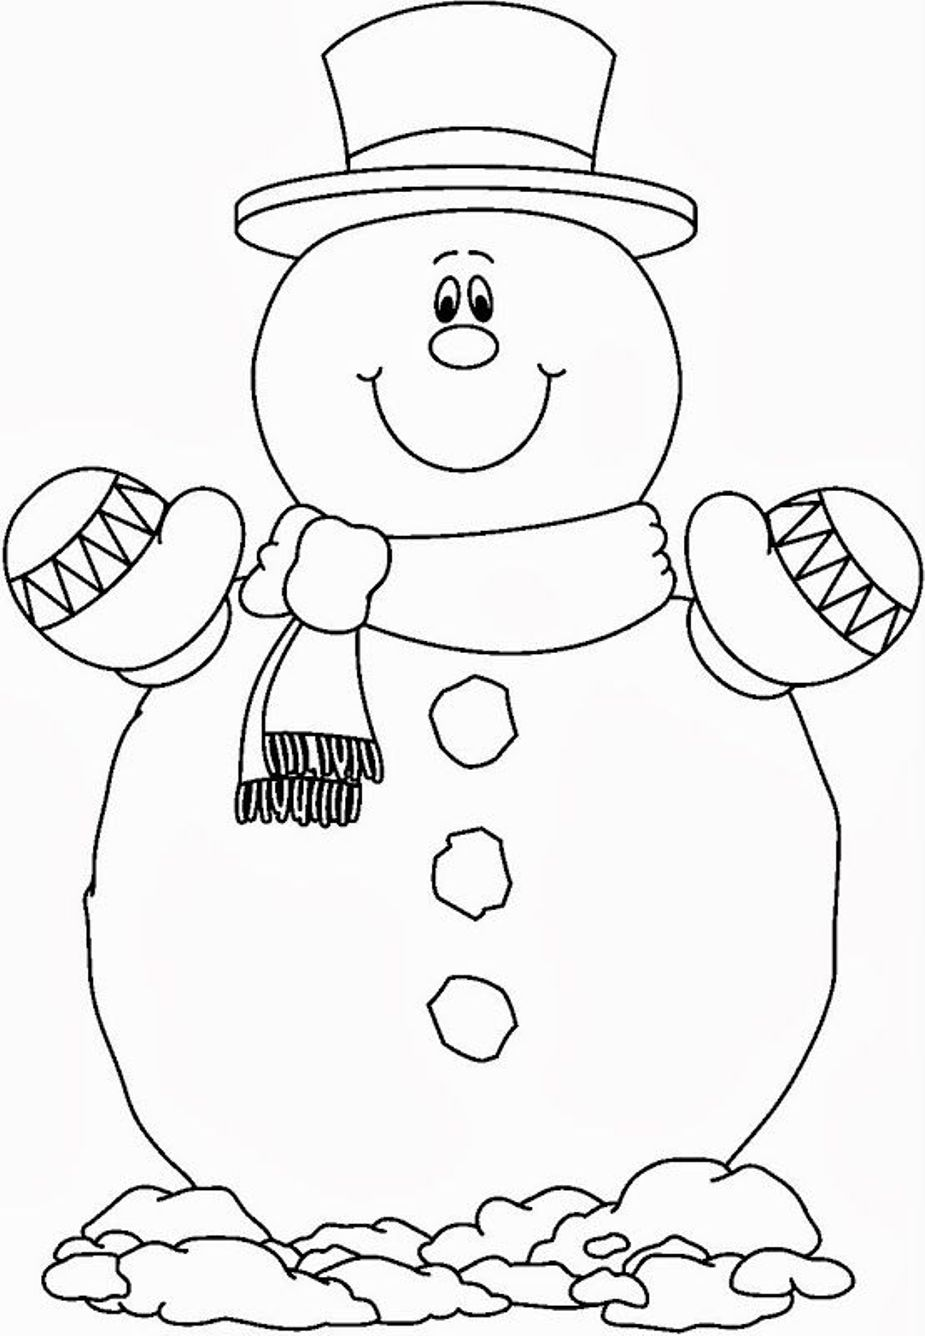 snowmen coloring pages children - photo#15